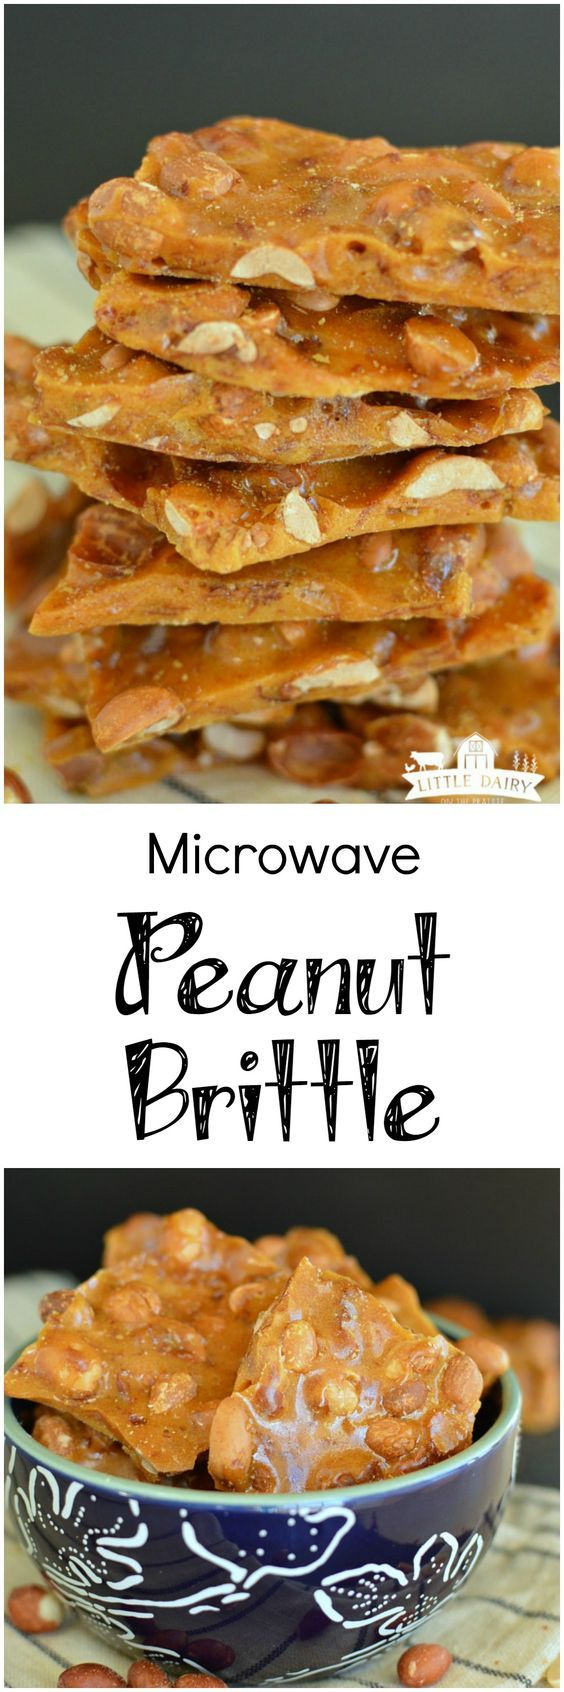 Microwave Peanut Brittle! No more candy thermometer. Just minutes to perfect peanut brittle!